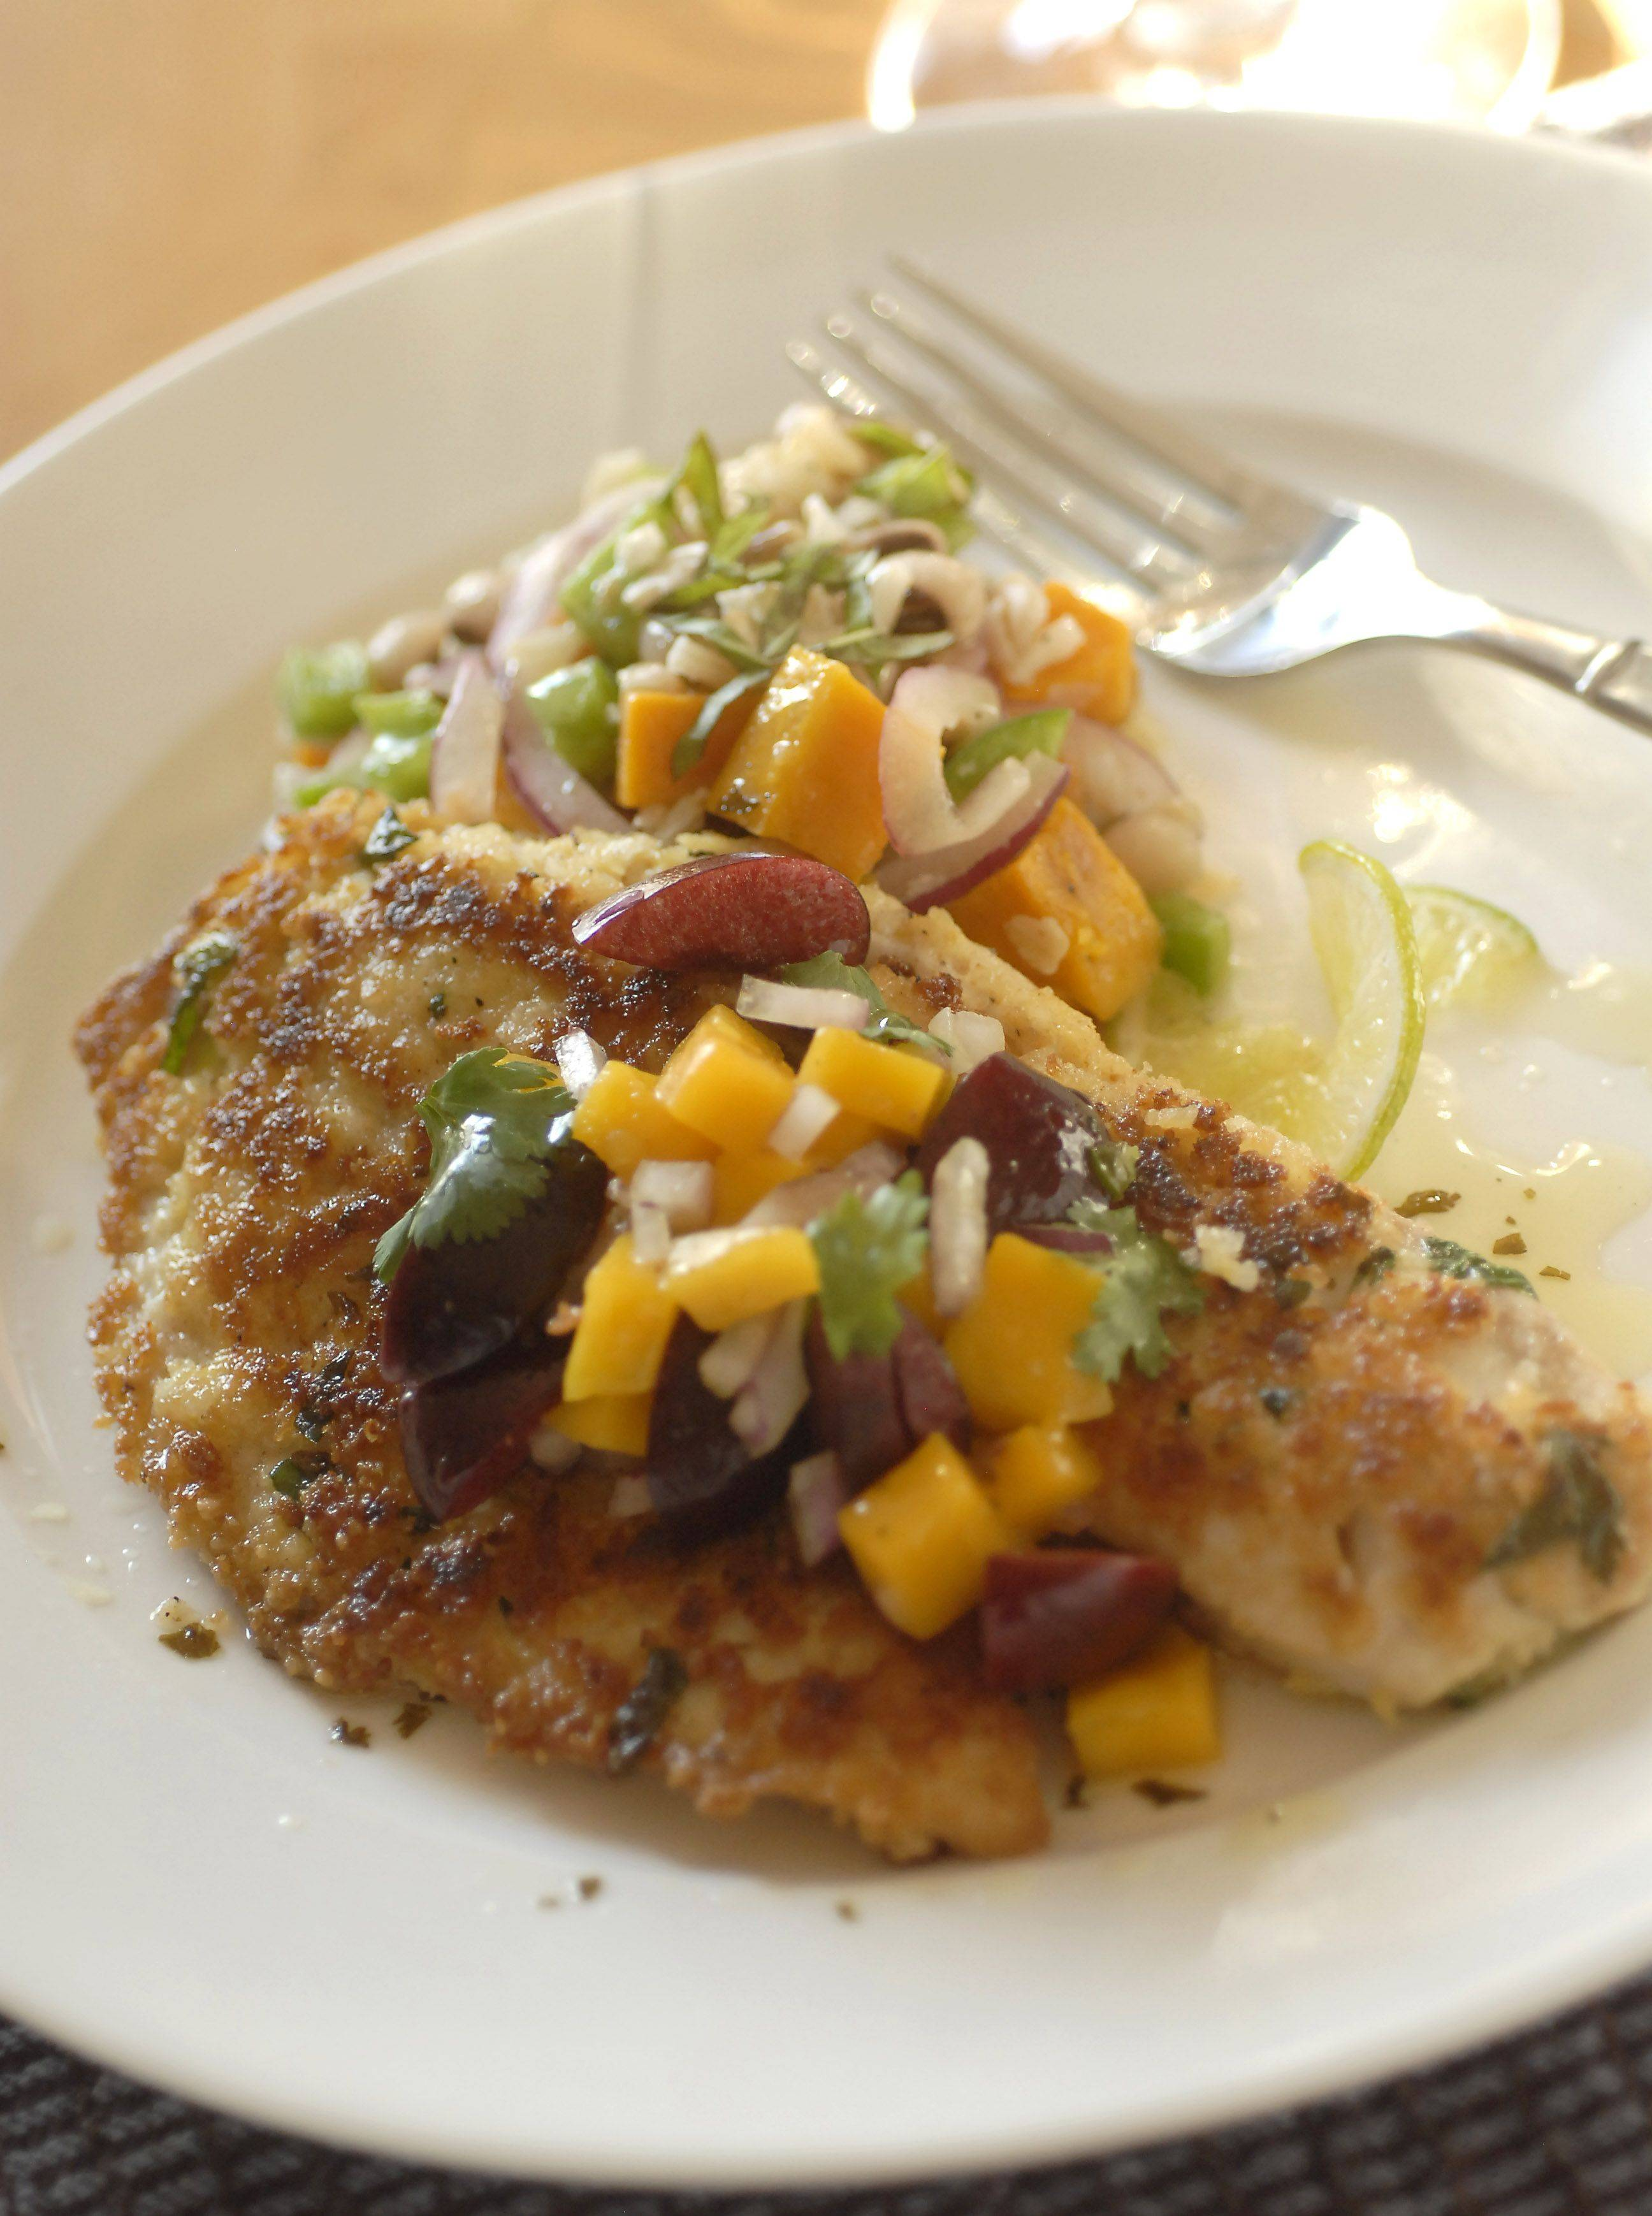 Michael Lalagos' Macadamia-Crusted Tilapia with Mango-Cherry Salsa with Black-Eyed Pea, Brown Rice and Butternut Squash Salad